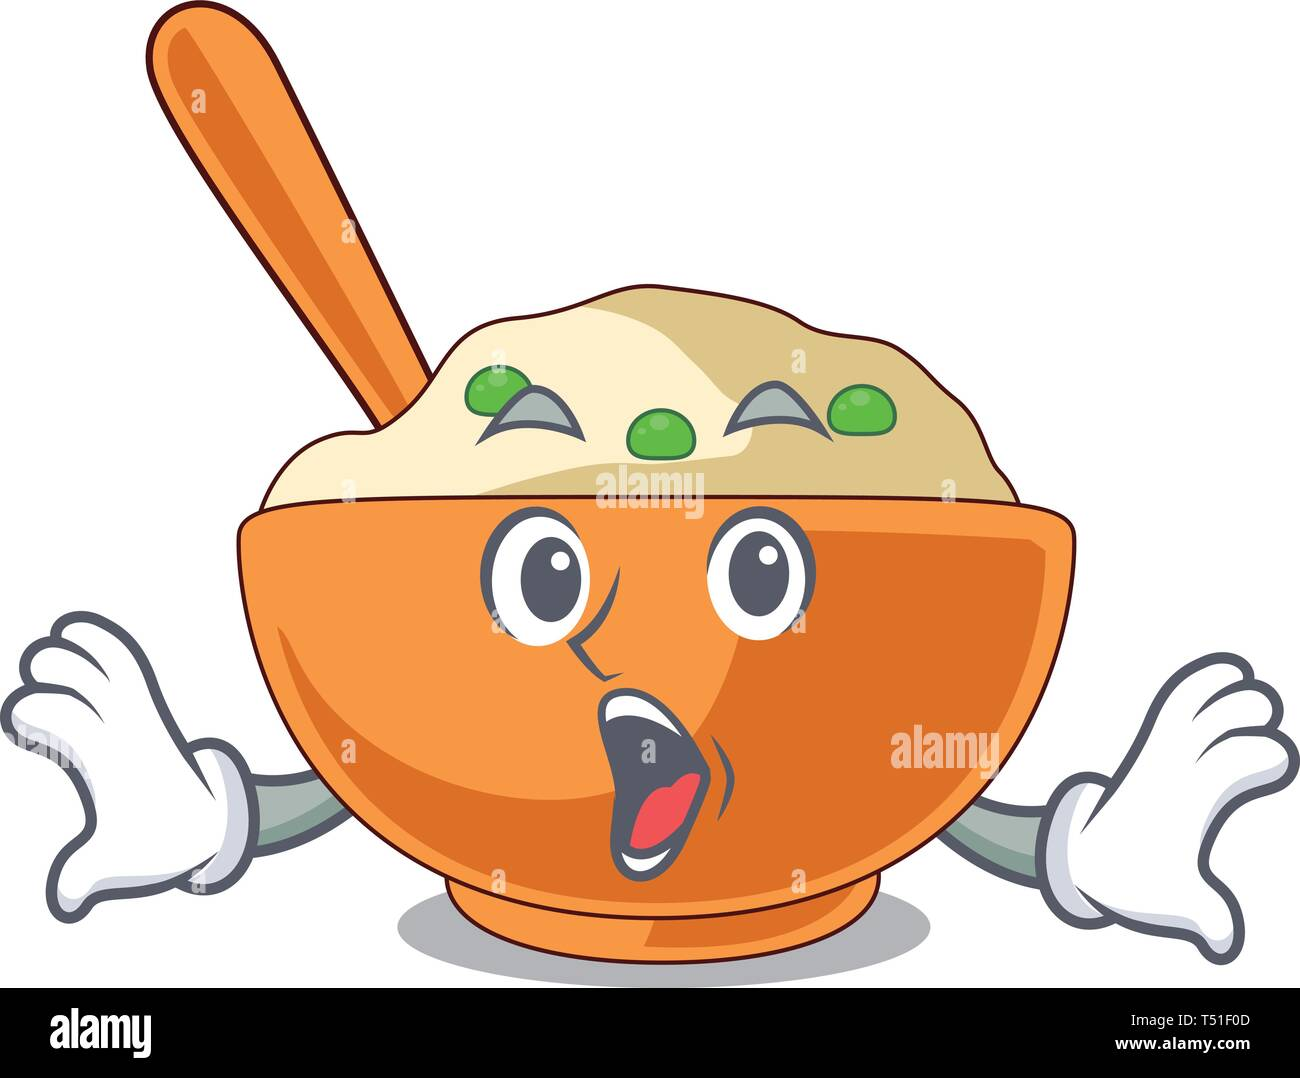 Surprised mashed potato in the shape mascot - Stock Image